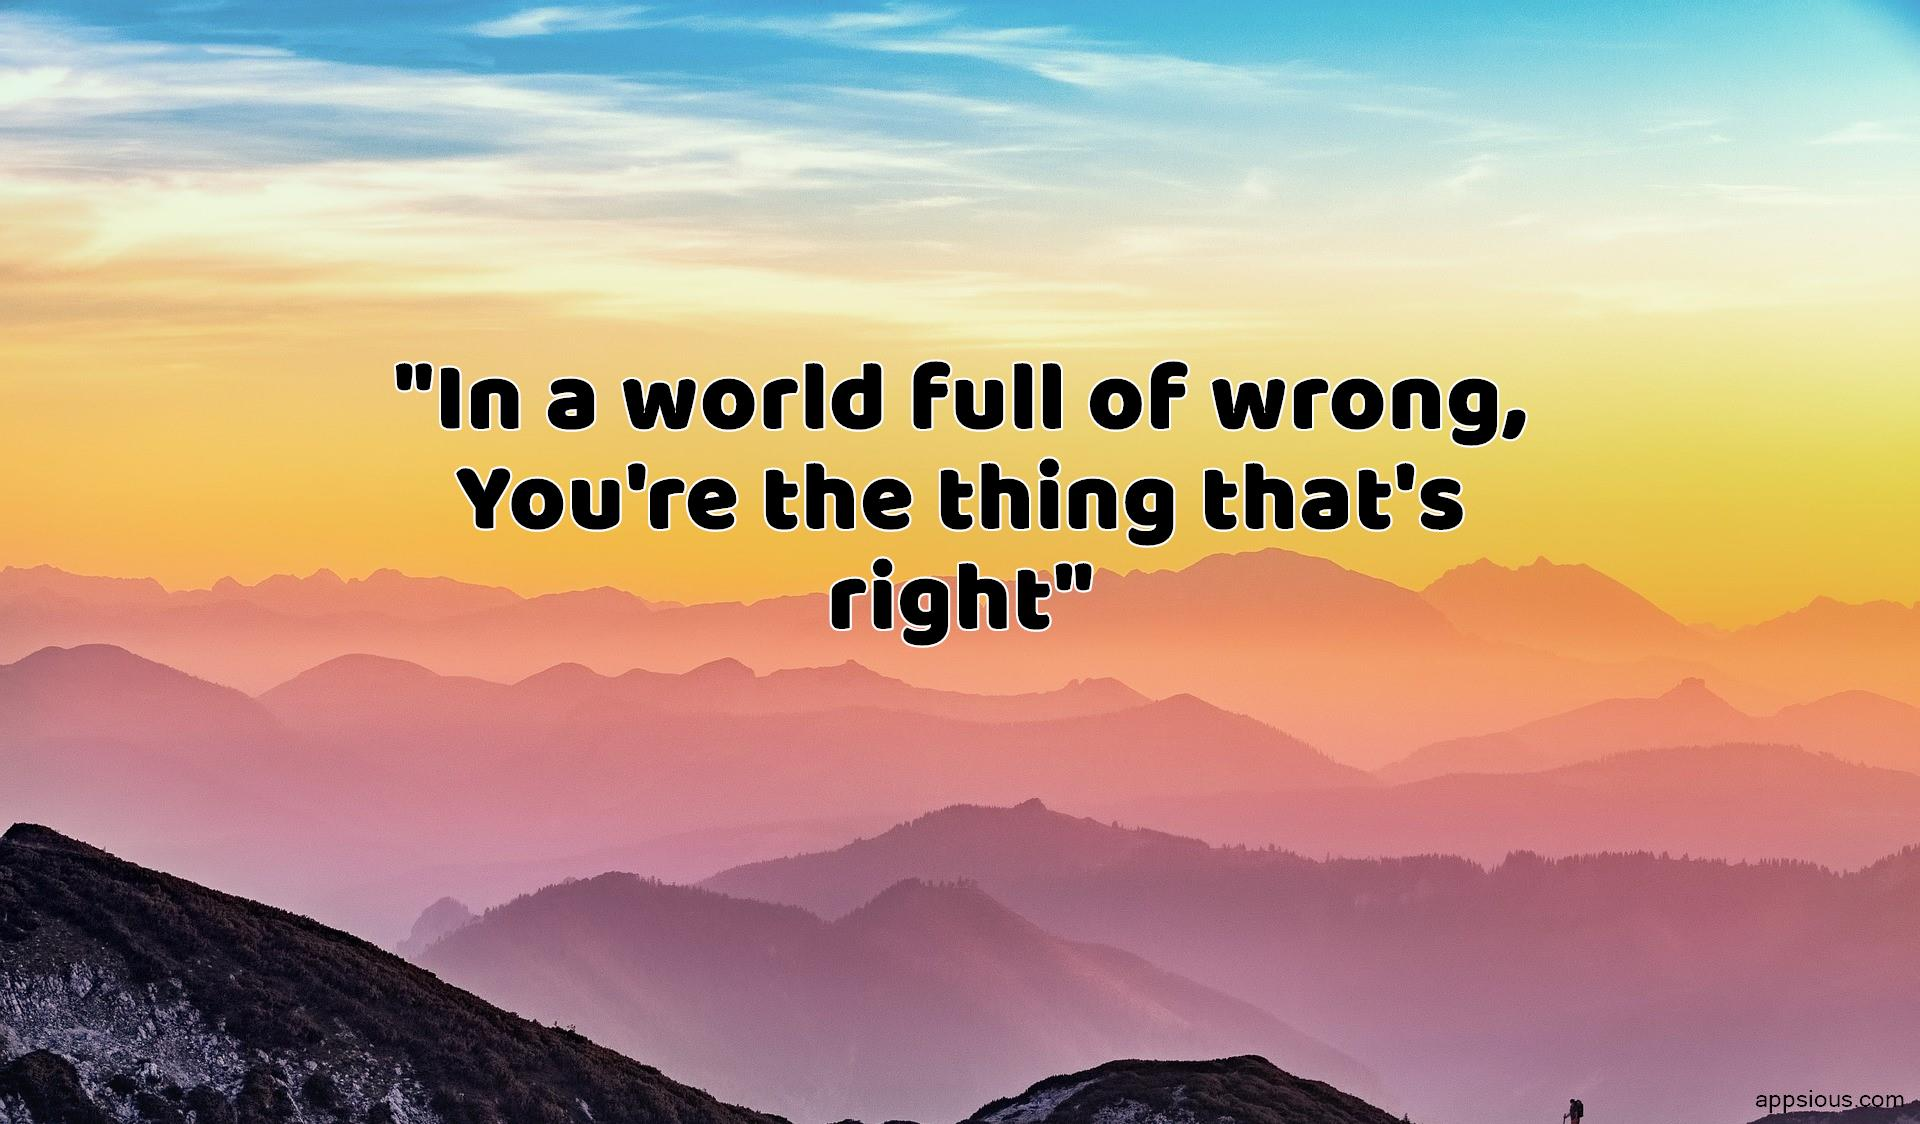 In a world full of wrong, You're the thing that's right